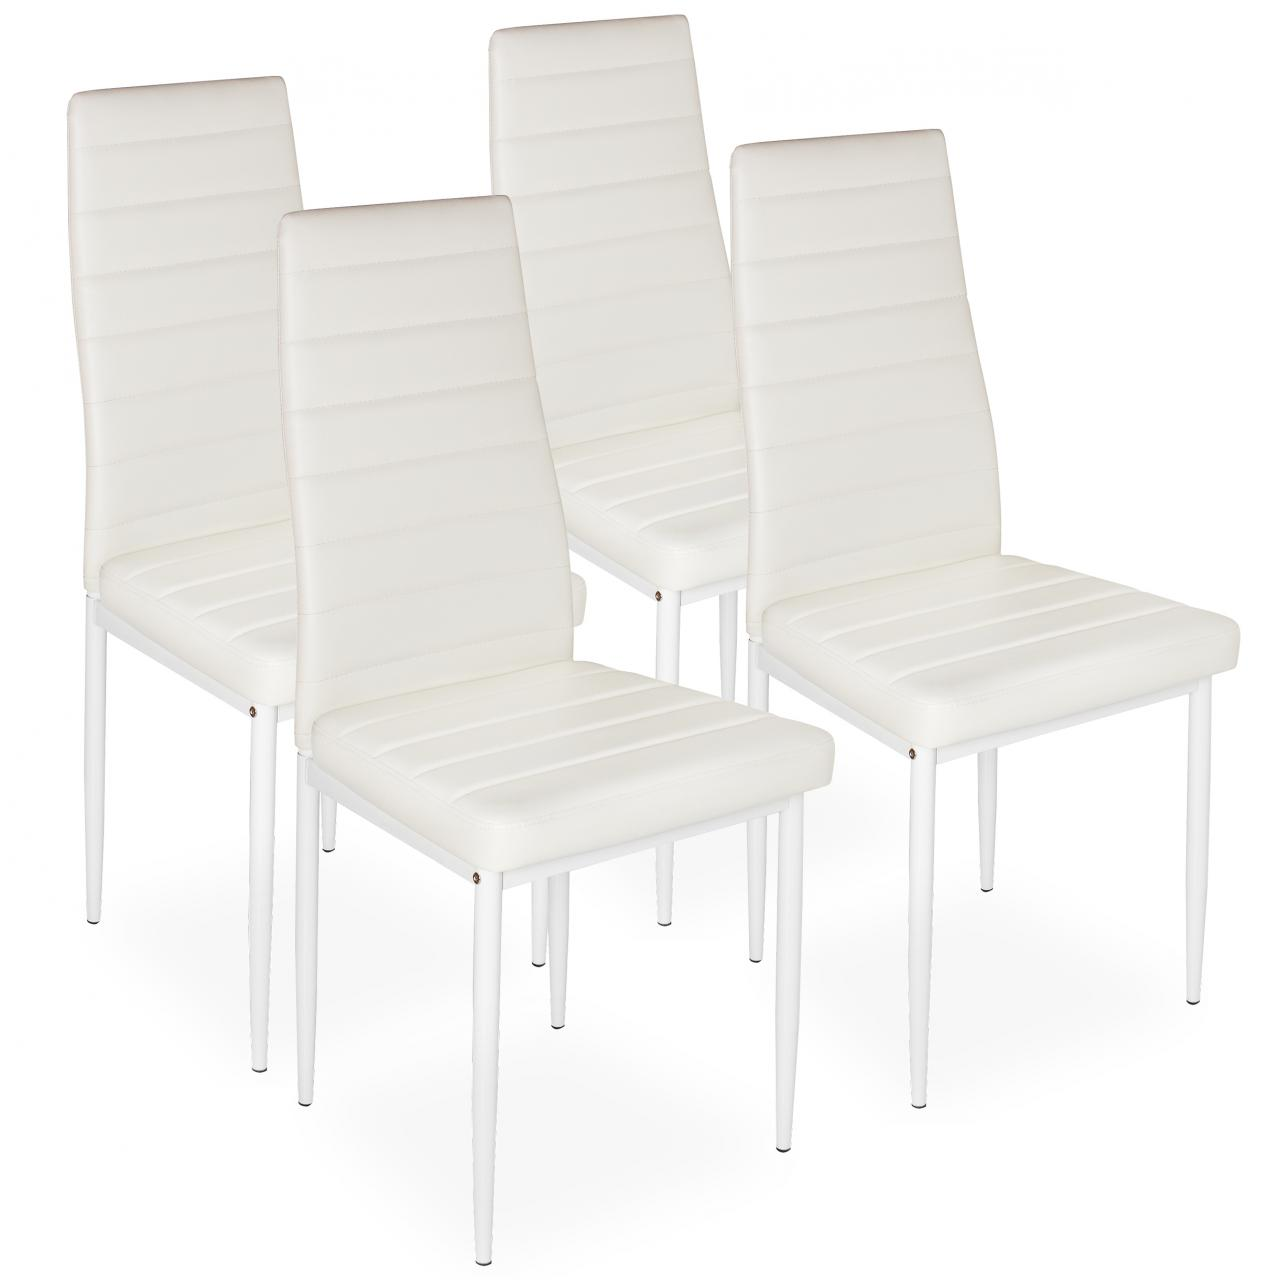 4 Piece Dining Chair Set Upholstered Chair Kitchen Dining